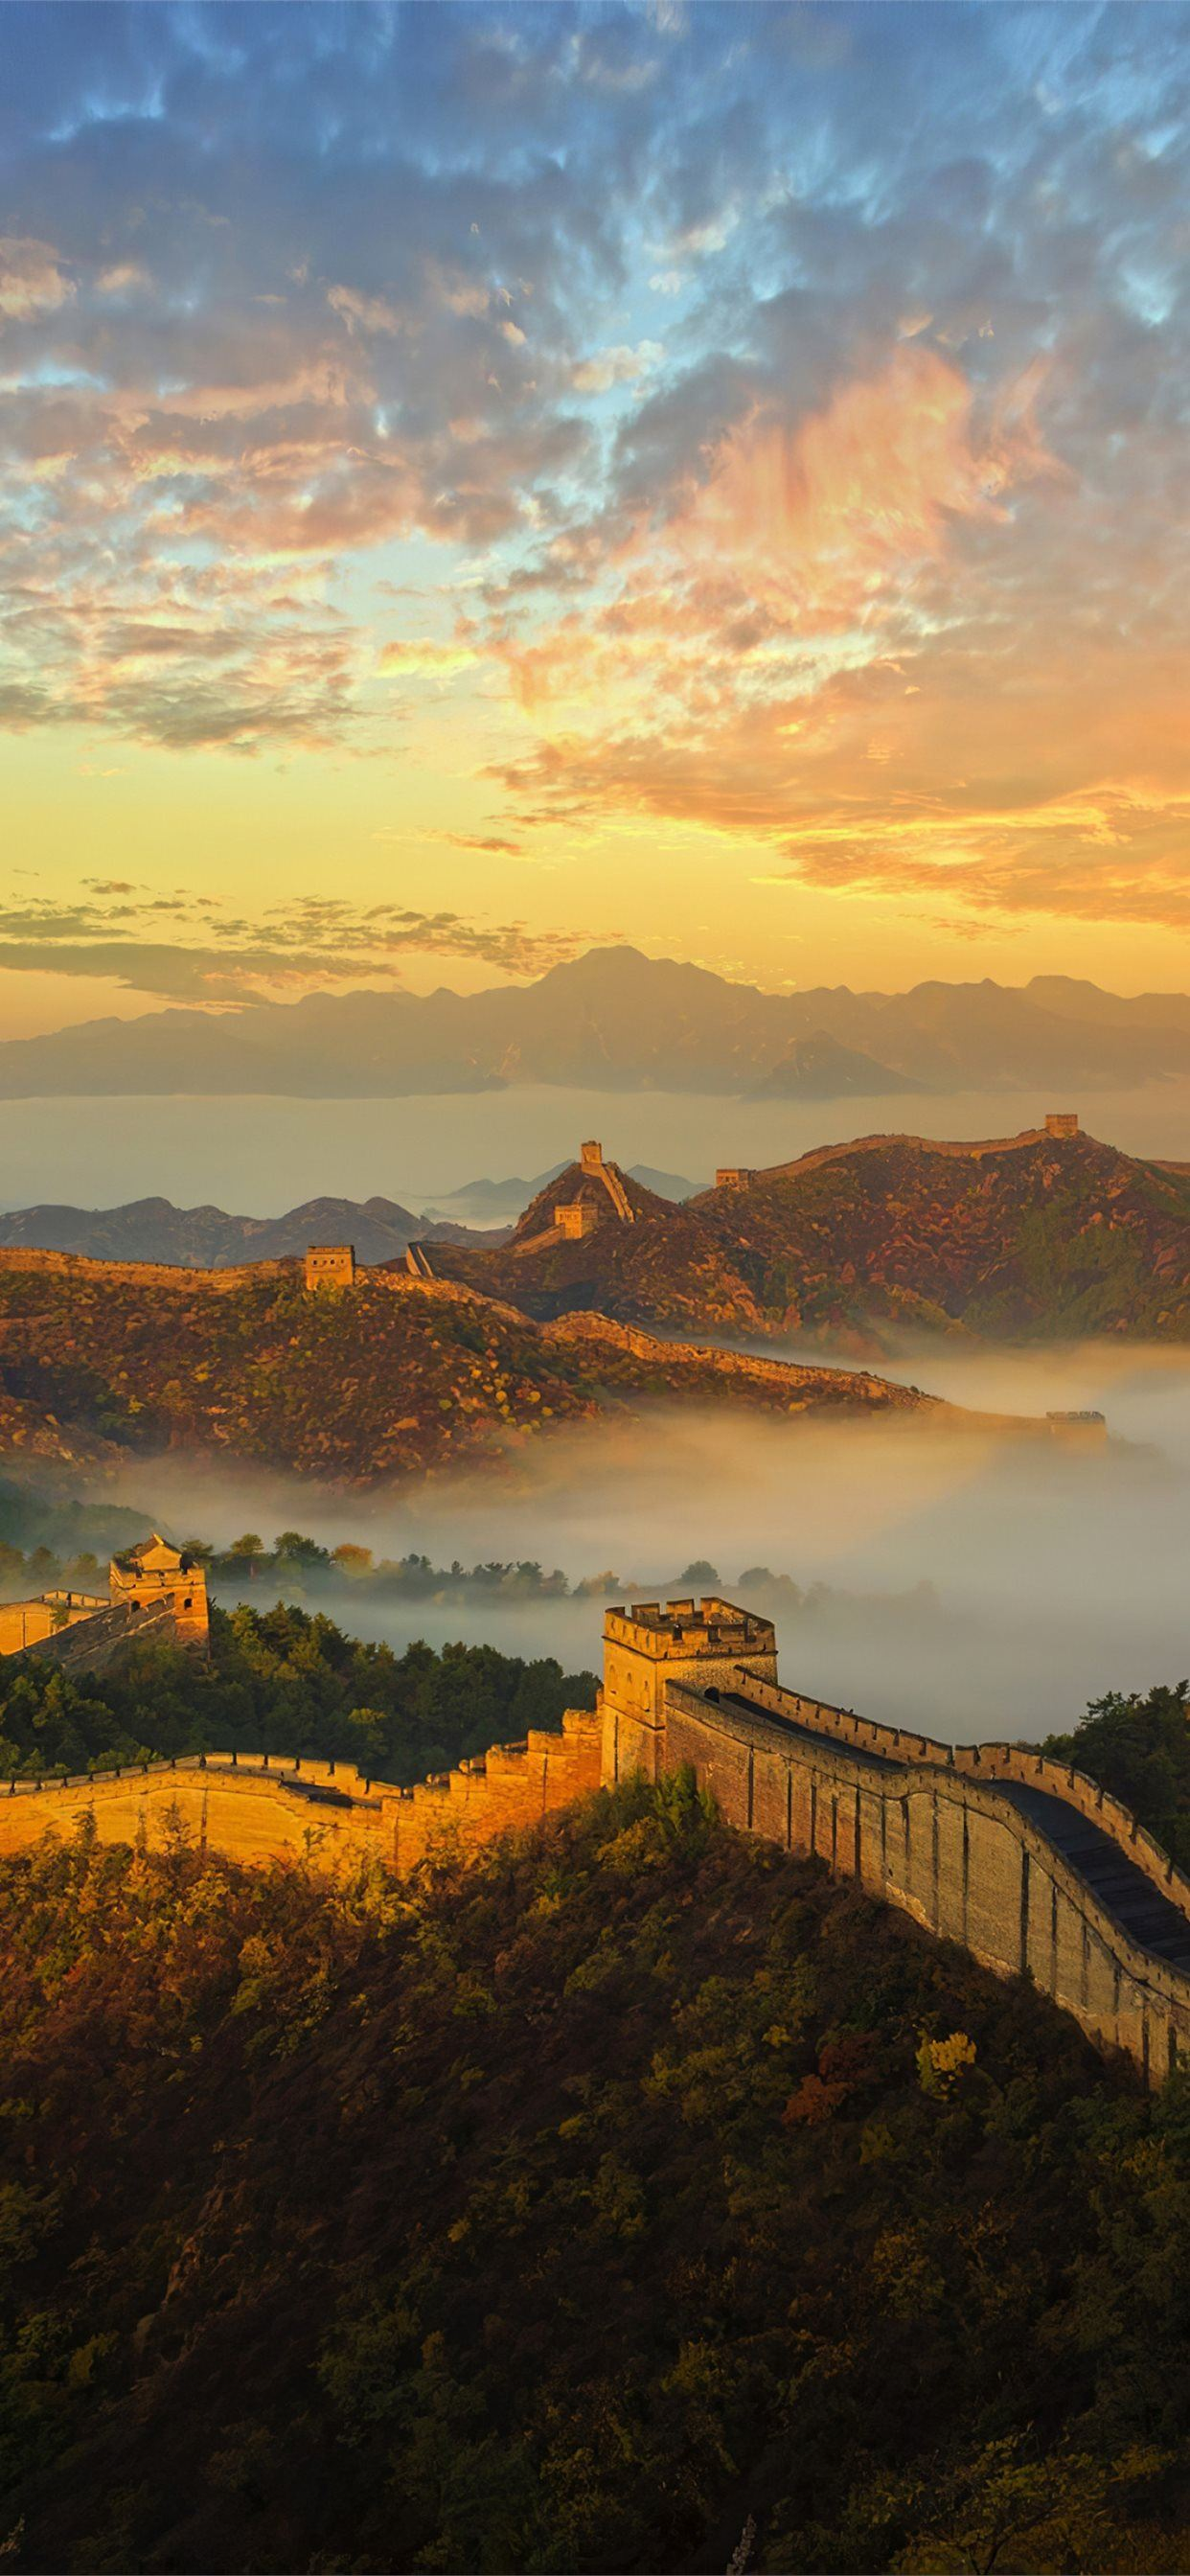 Great Wall Of China 4k Samsung Galaxy Note 9 8 S9  iphone 8 wallpaper ilikewallpaper com